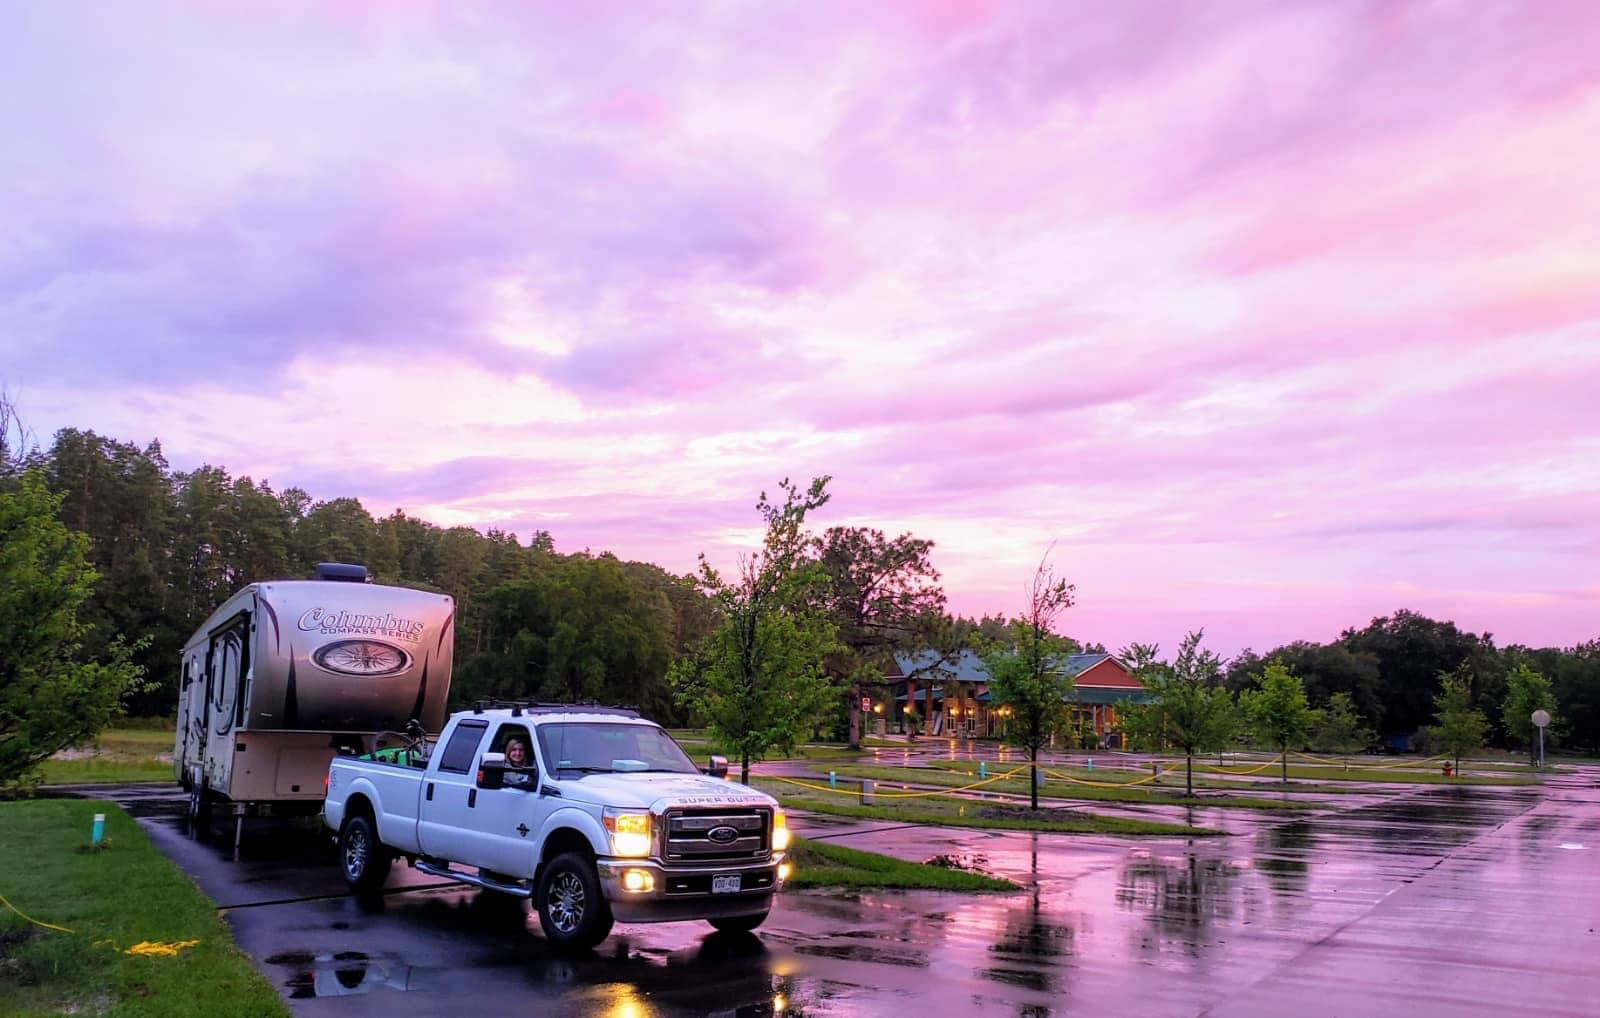 Camp Idlewild beautiful pink and purple sunset with wooded building in the background with a truck and camper in a parking lot.